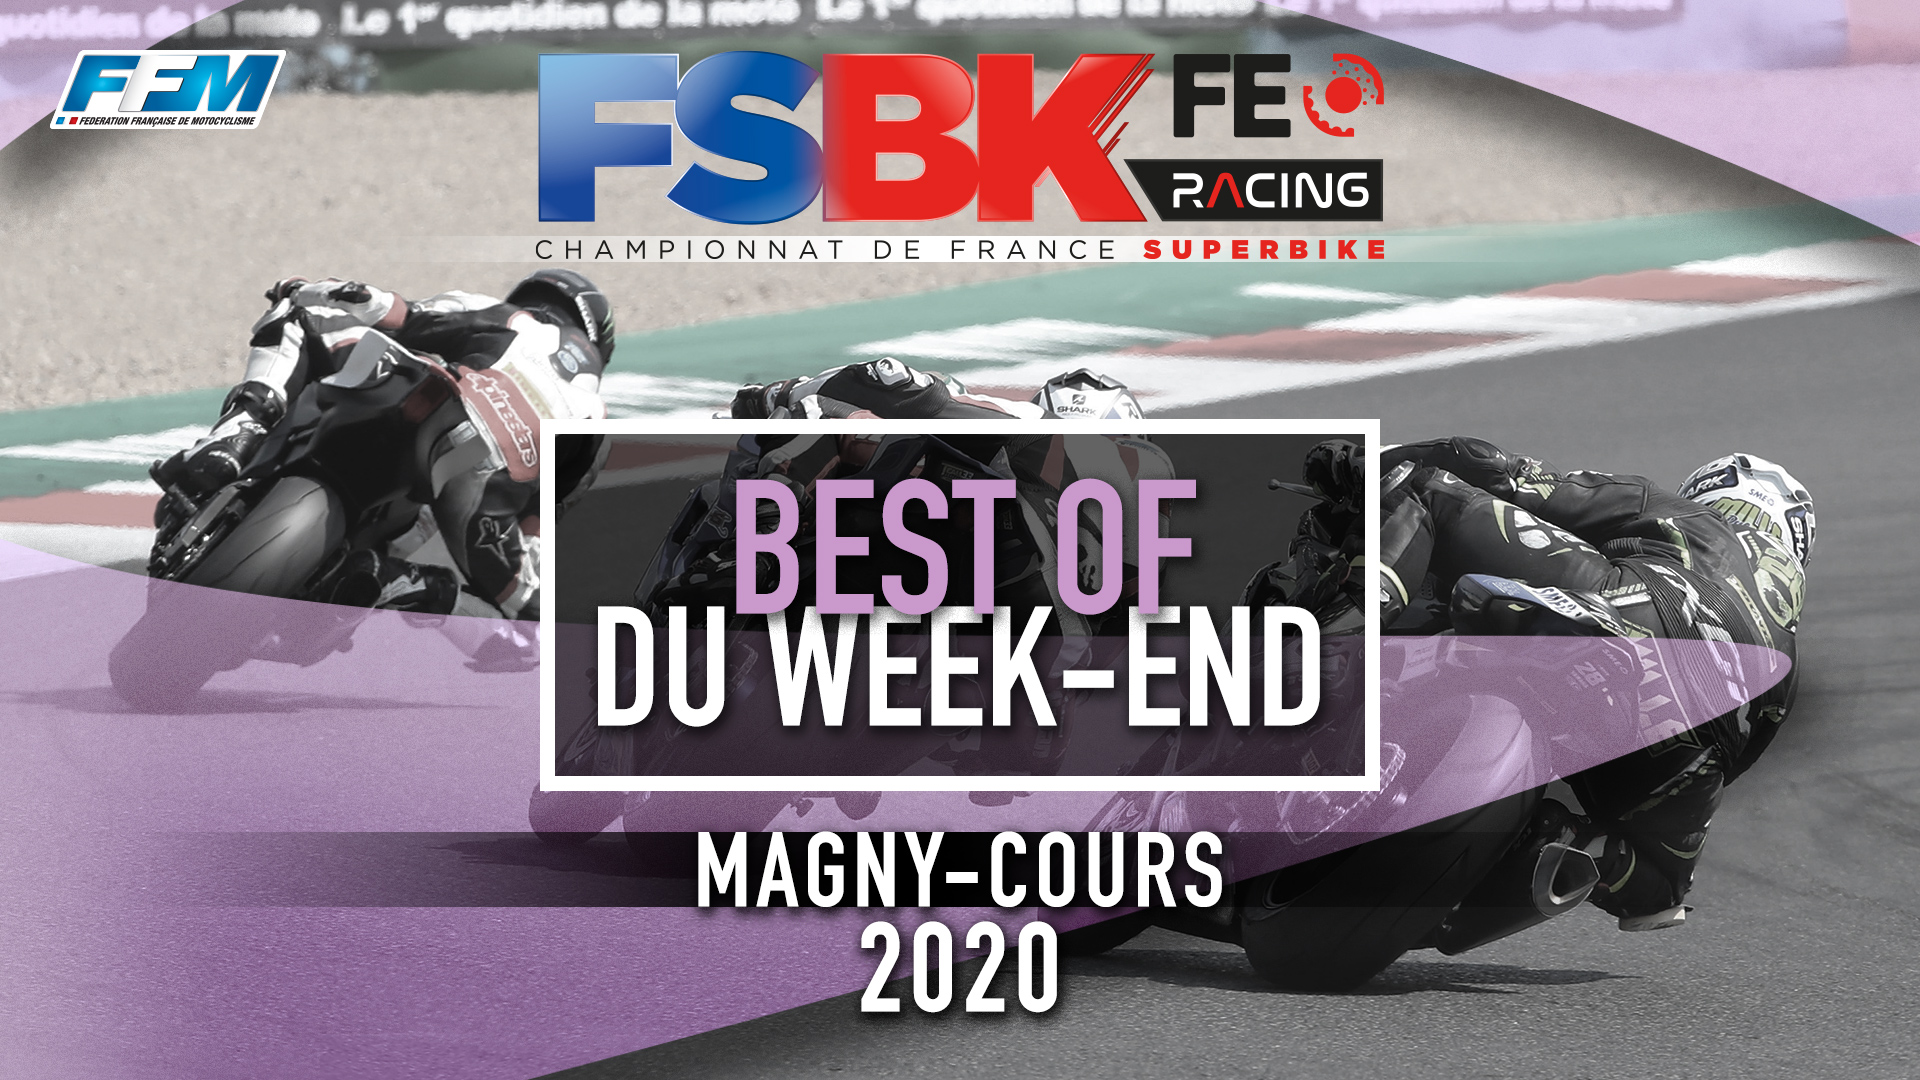 // BEST OF MAGNY COURS (58) //